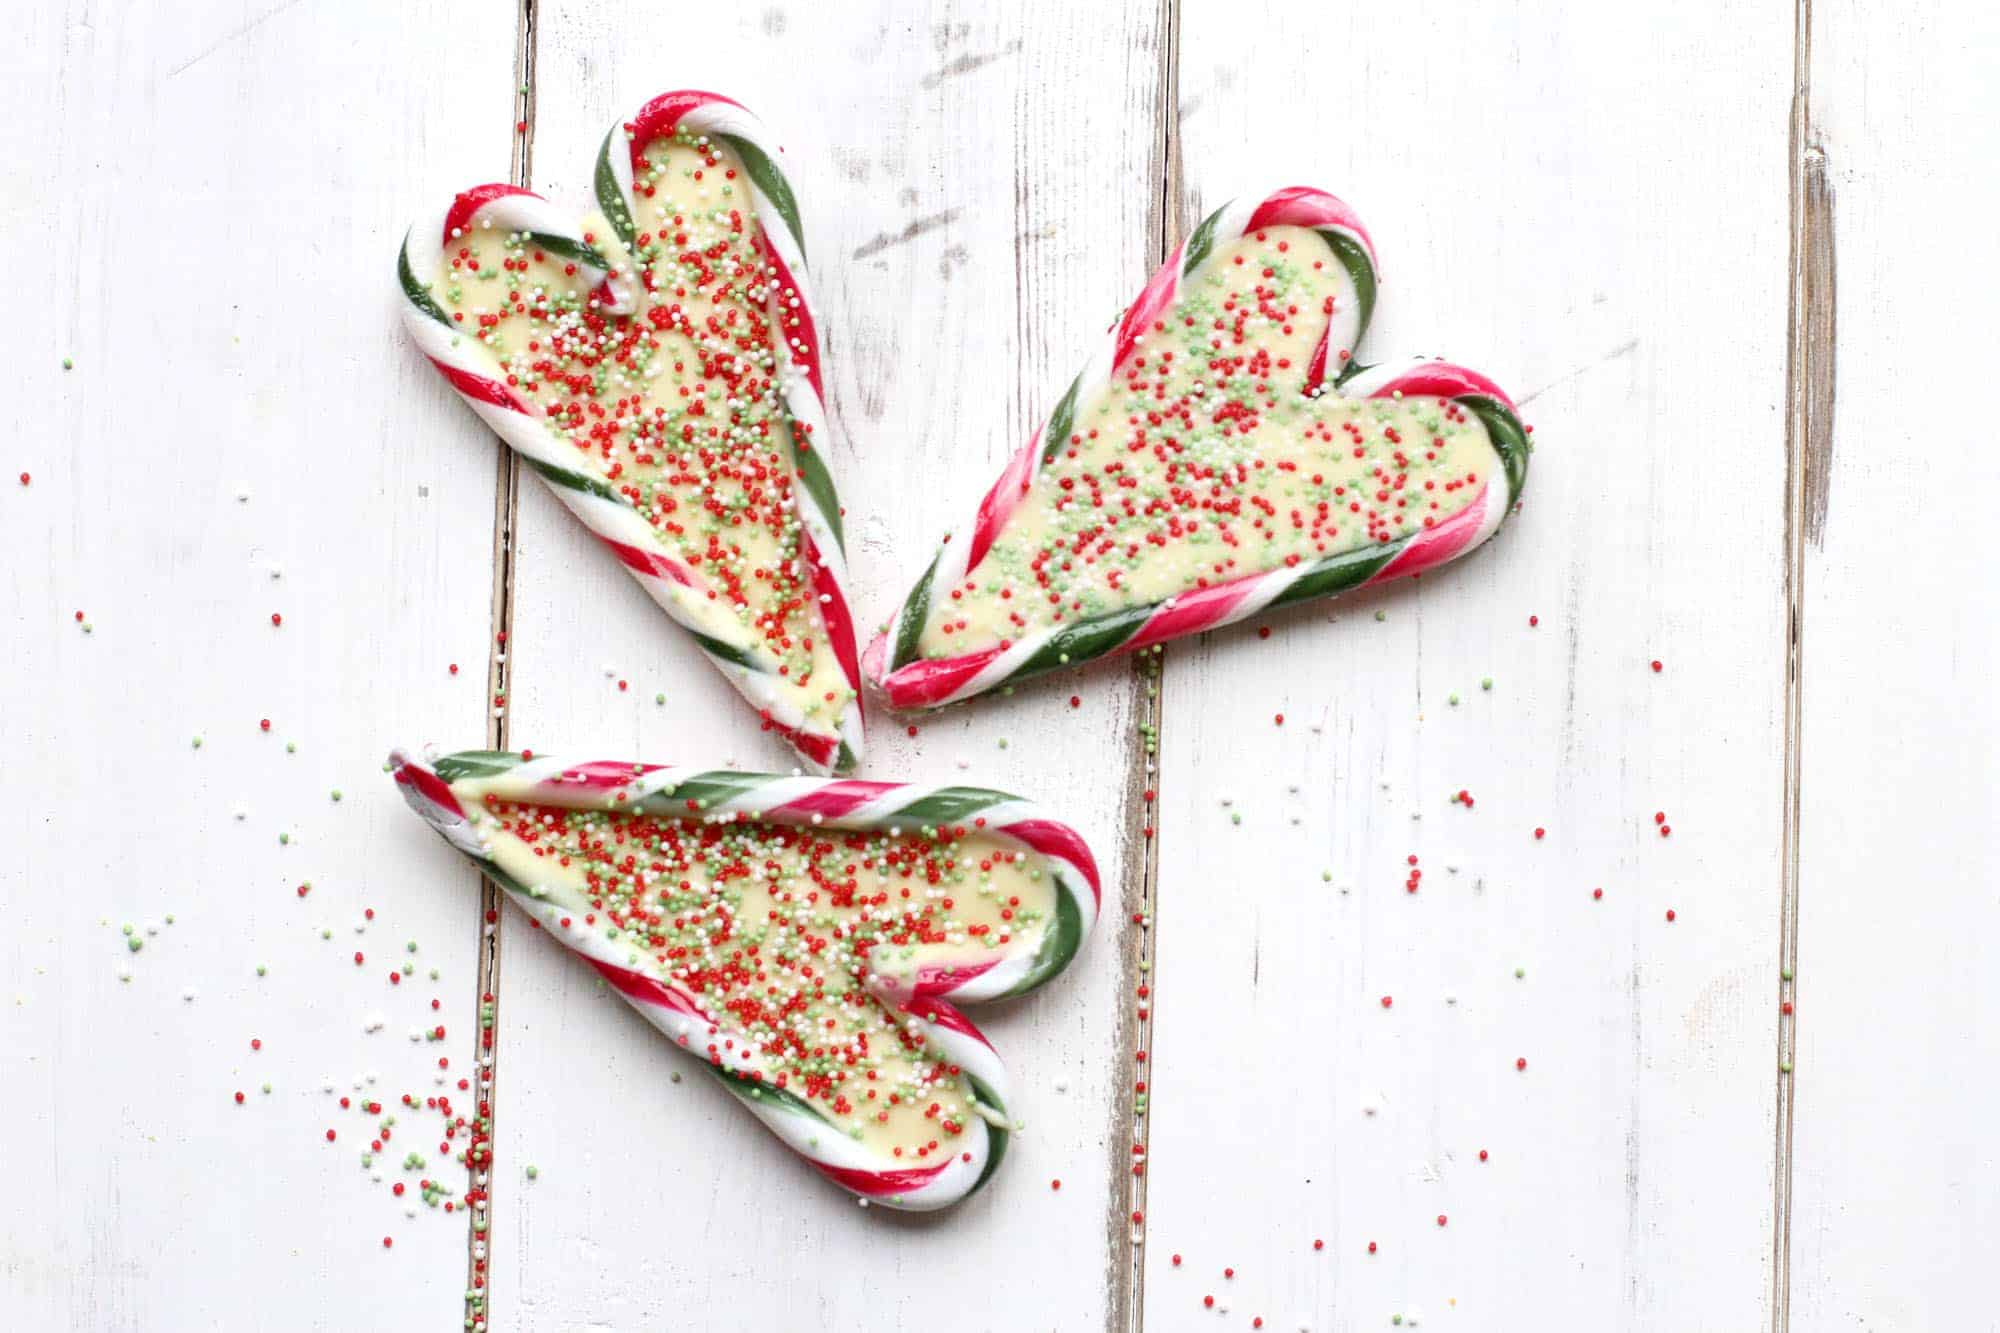 Candy cane peppermint hearts filled with a white chocolate centre and decorated with festive sprinkles